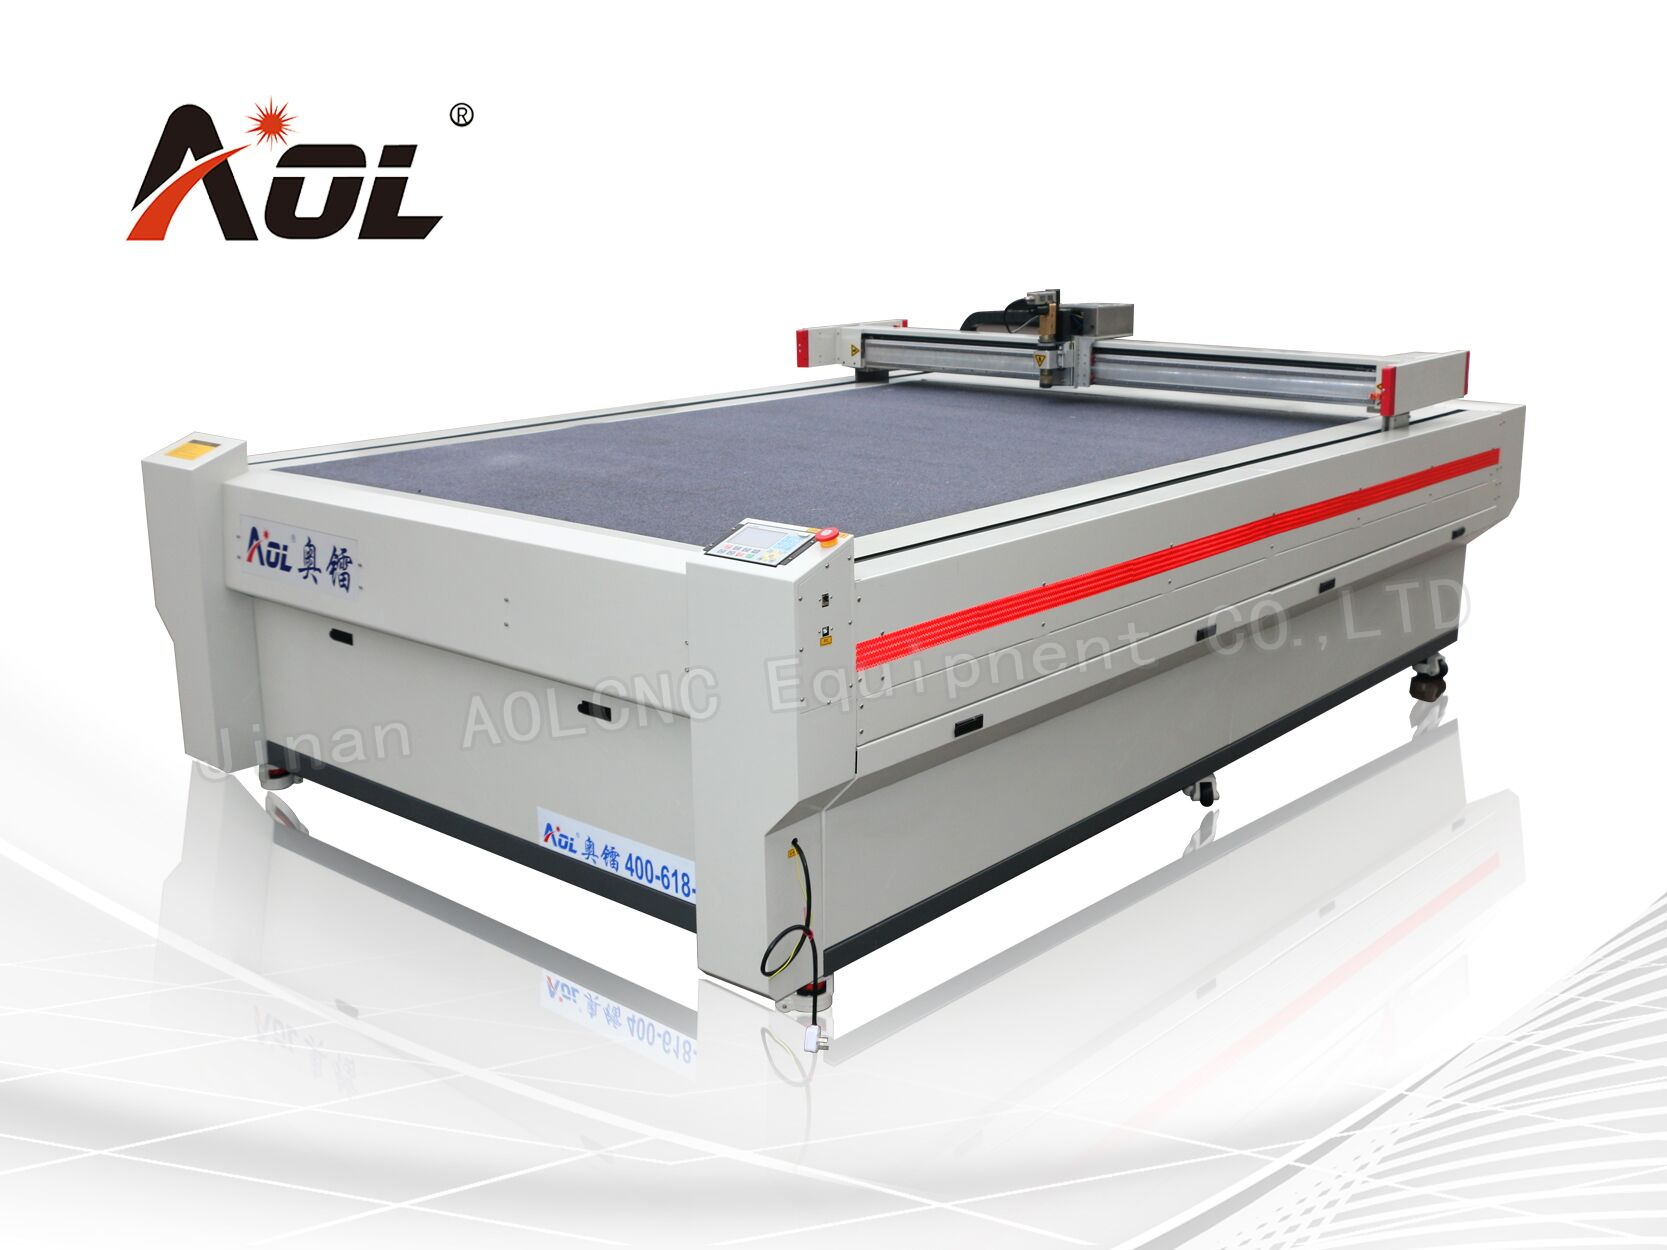 Oscillatory/vibratory knife cutting machine